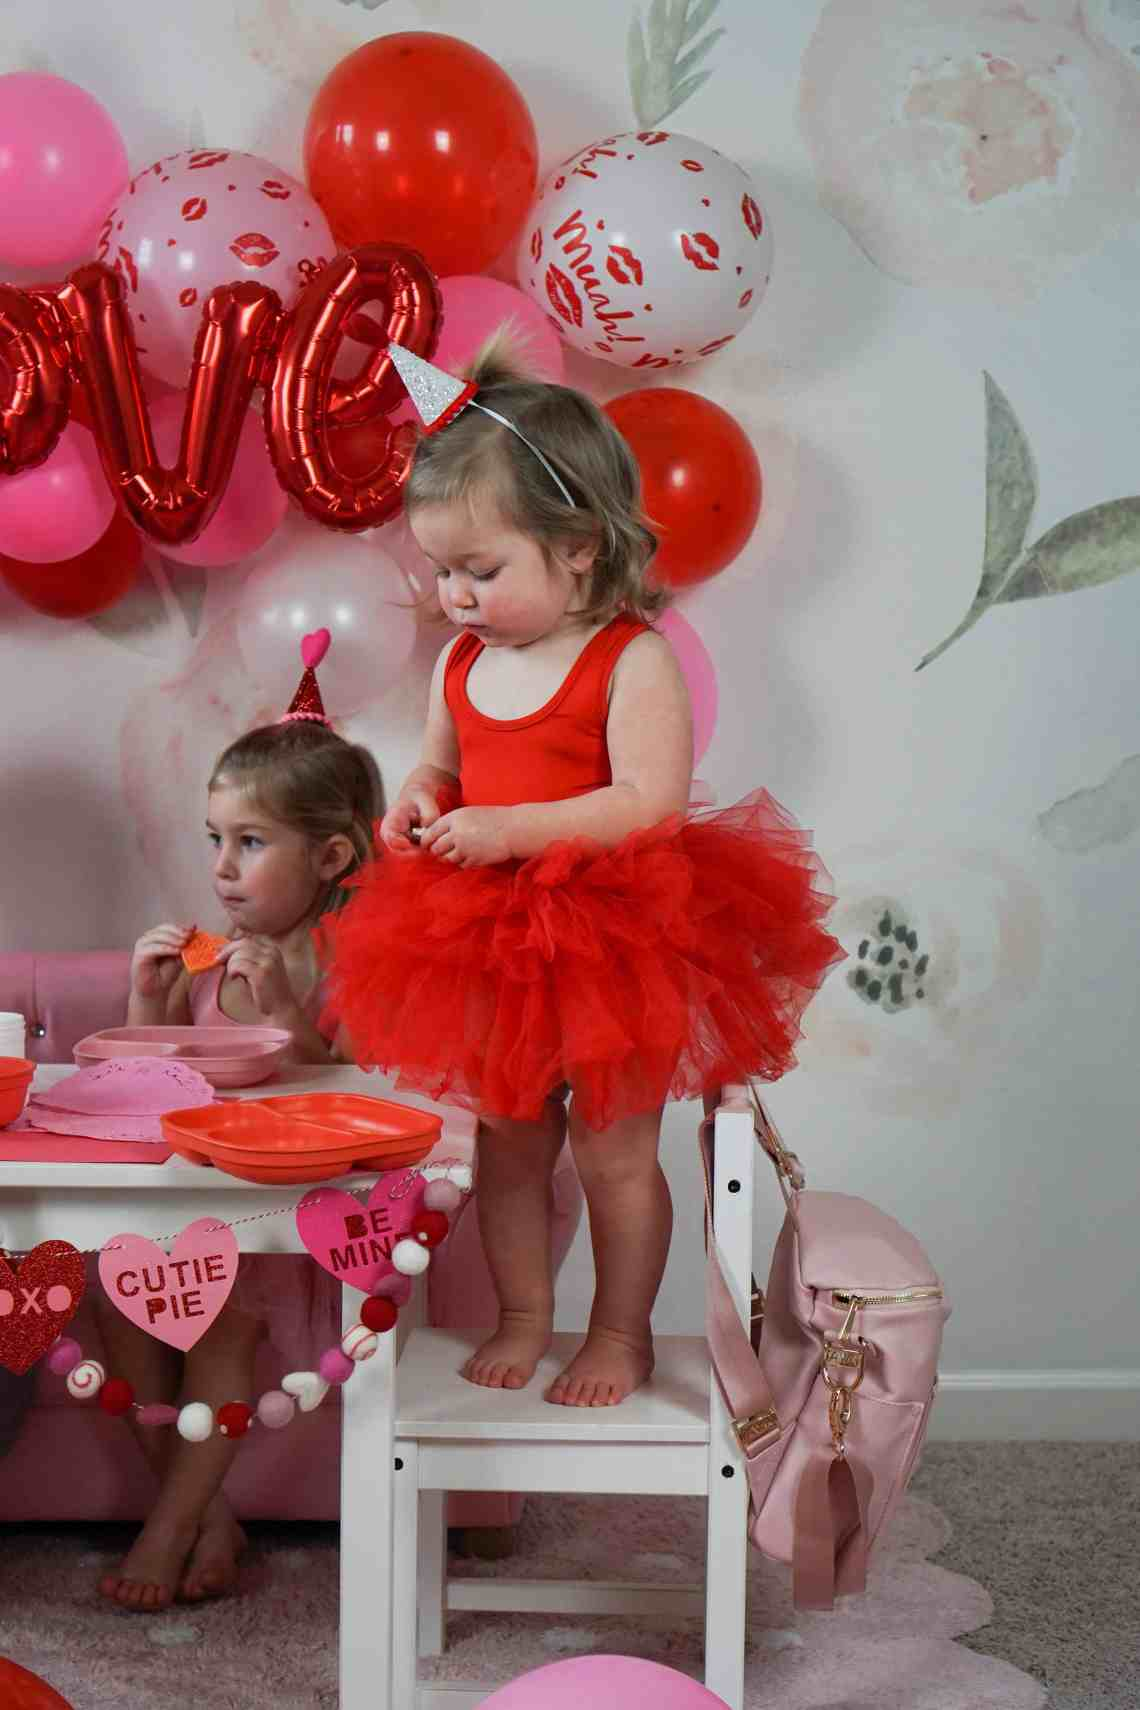 toddler girl in red tutu standing on chair